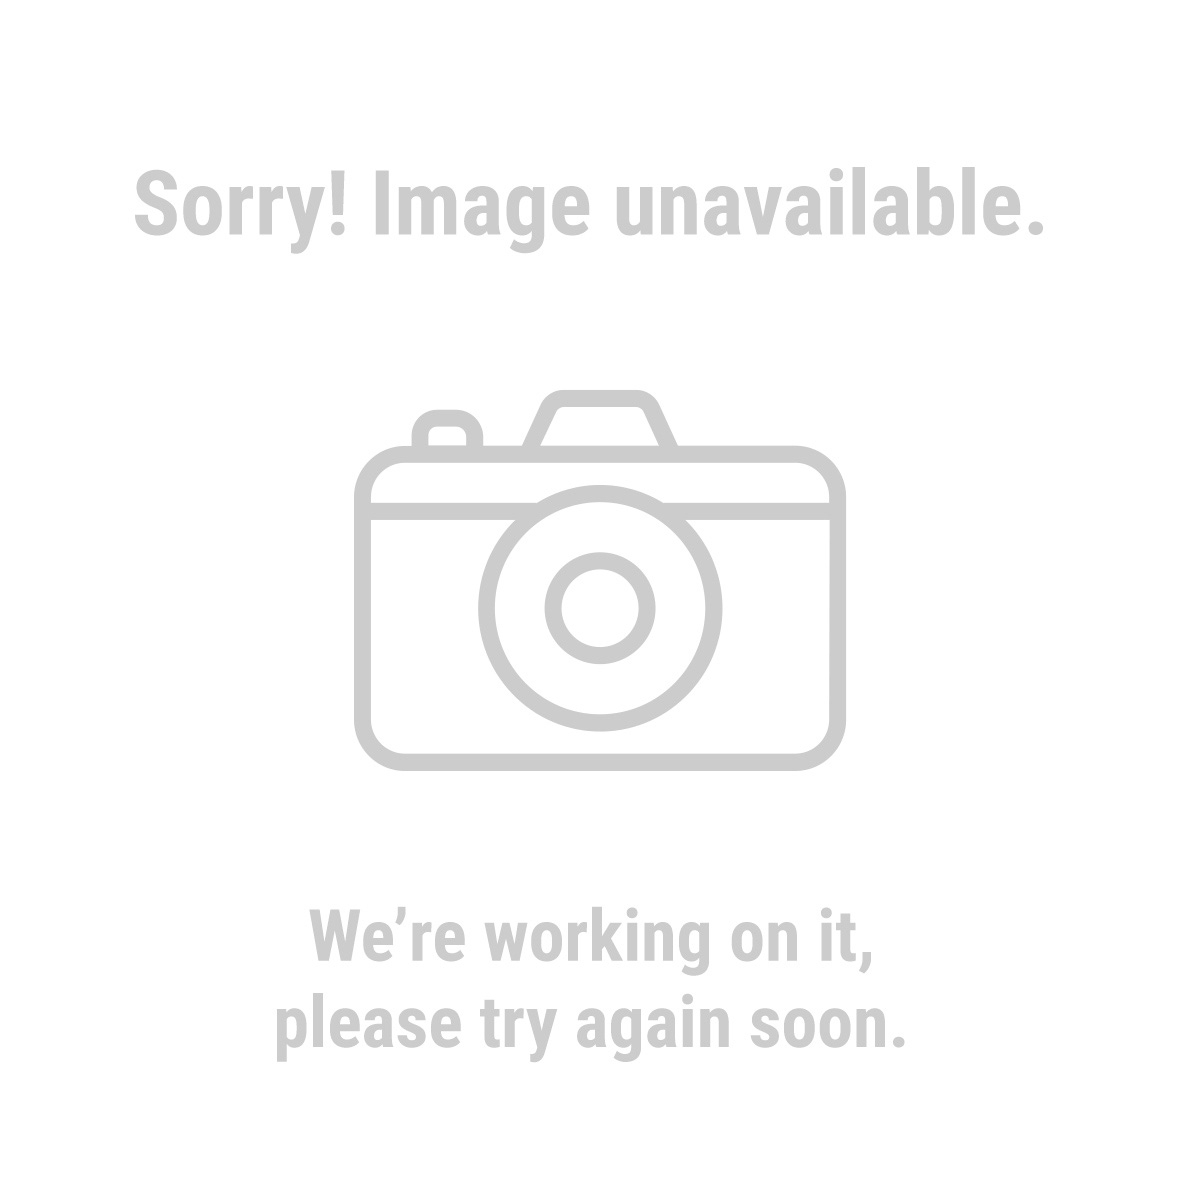 Hf 90 Amp Flux Wire Feed Welder Center Automations Gt Power Control Current Loop Scr L14285 Next Harbor Freight Coupon Wordpress Code Rh Gmena Tk Problems